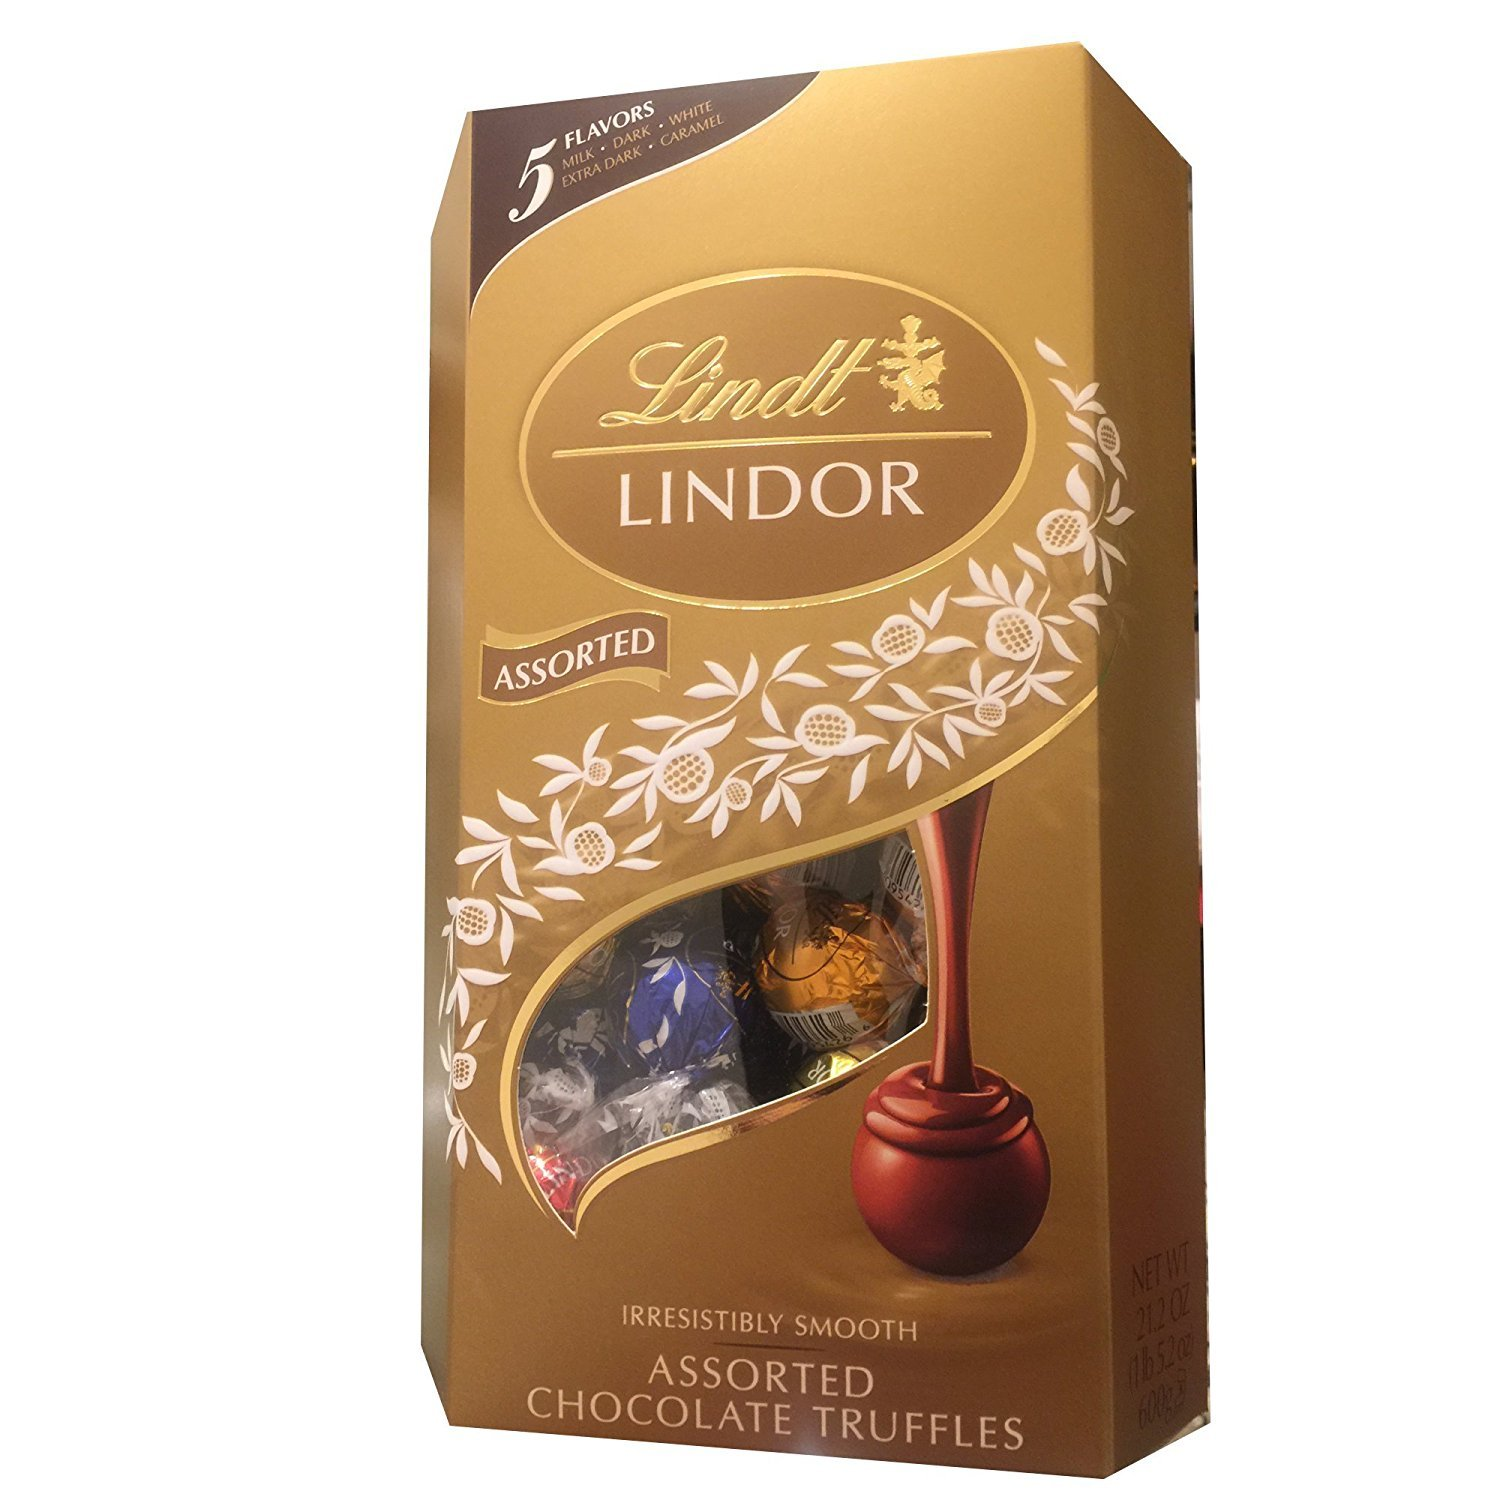 Lindt Lindor Assorted Chocolate Truffles Gift Box, 5 Flavors, 21.2 Ounces by Lindor